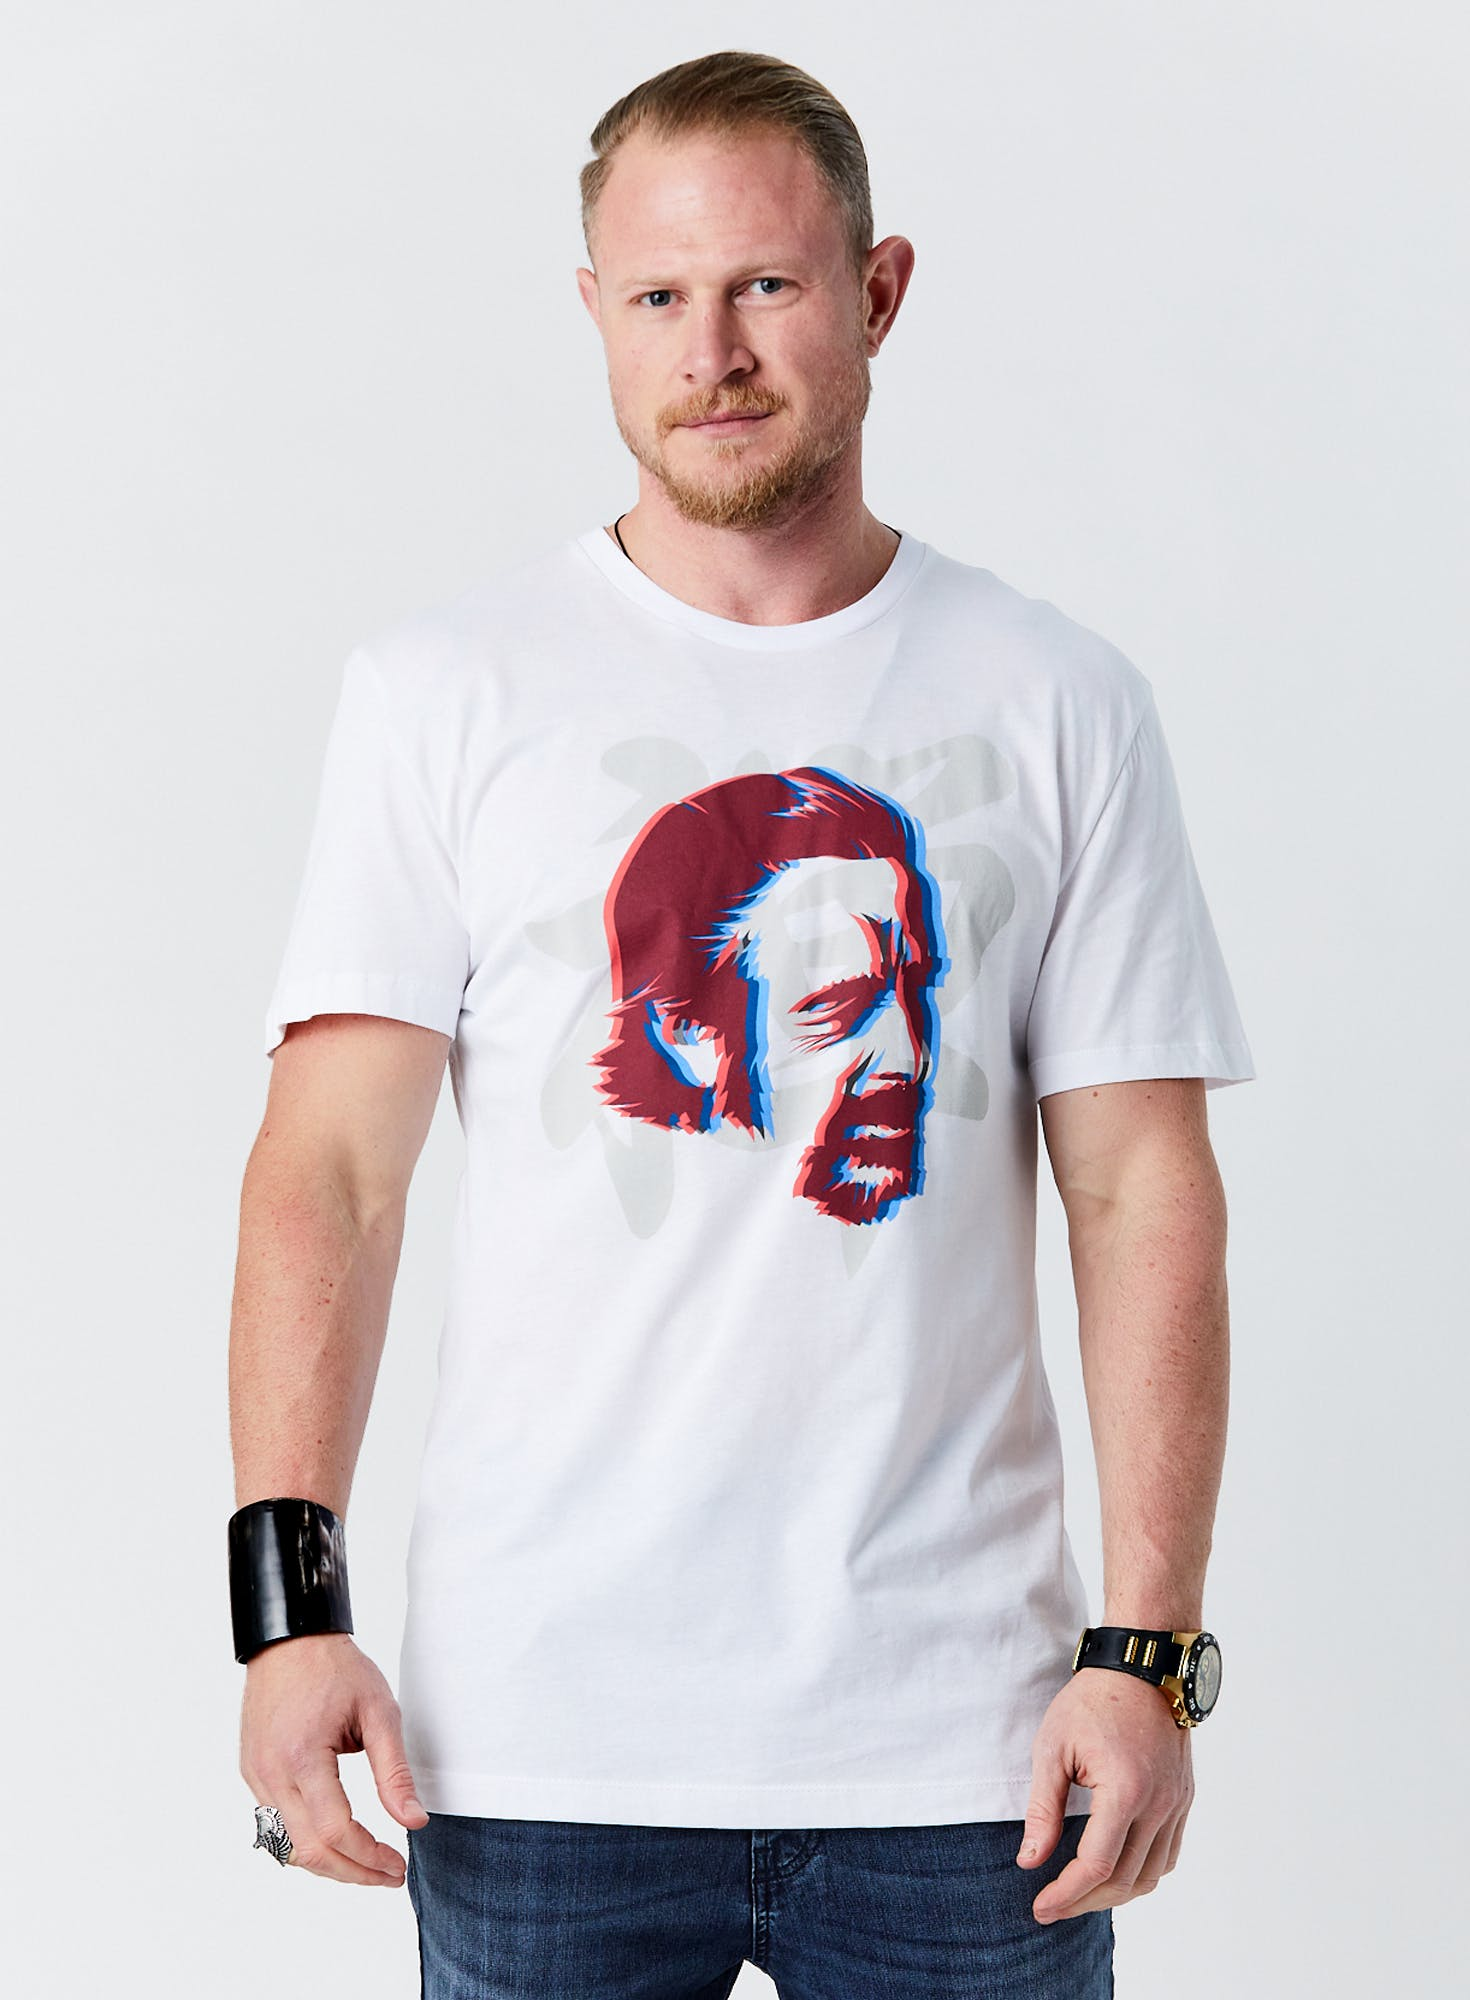 Alan Watts T-Shirt